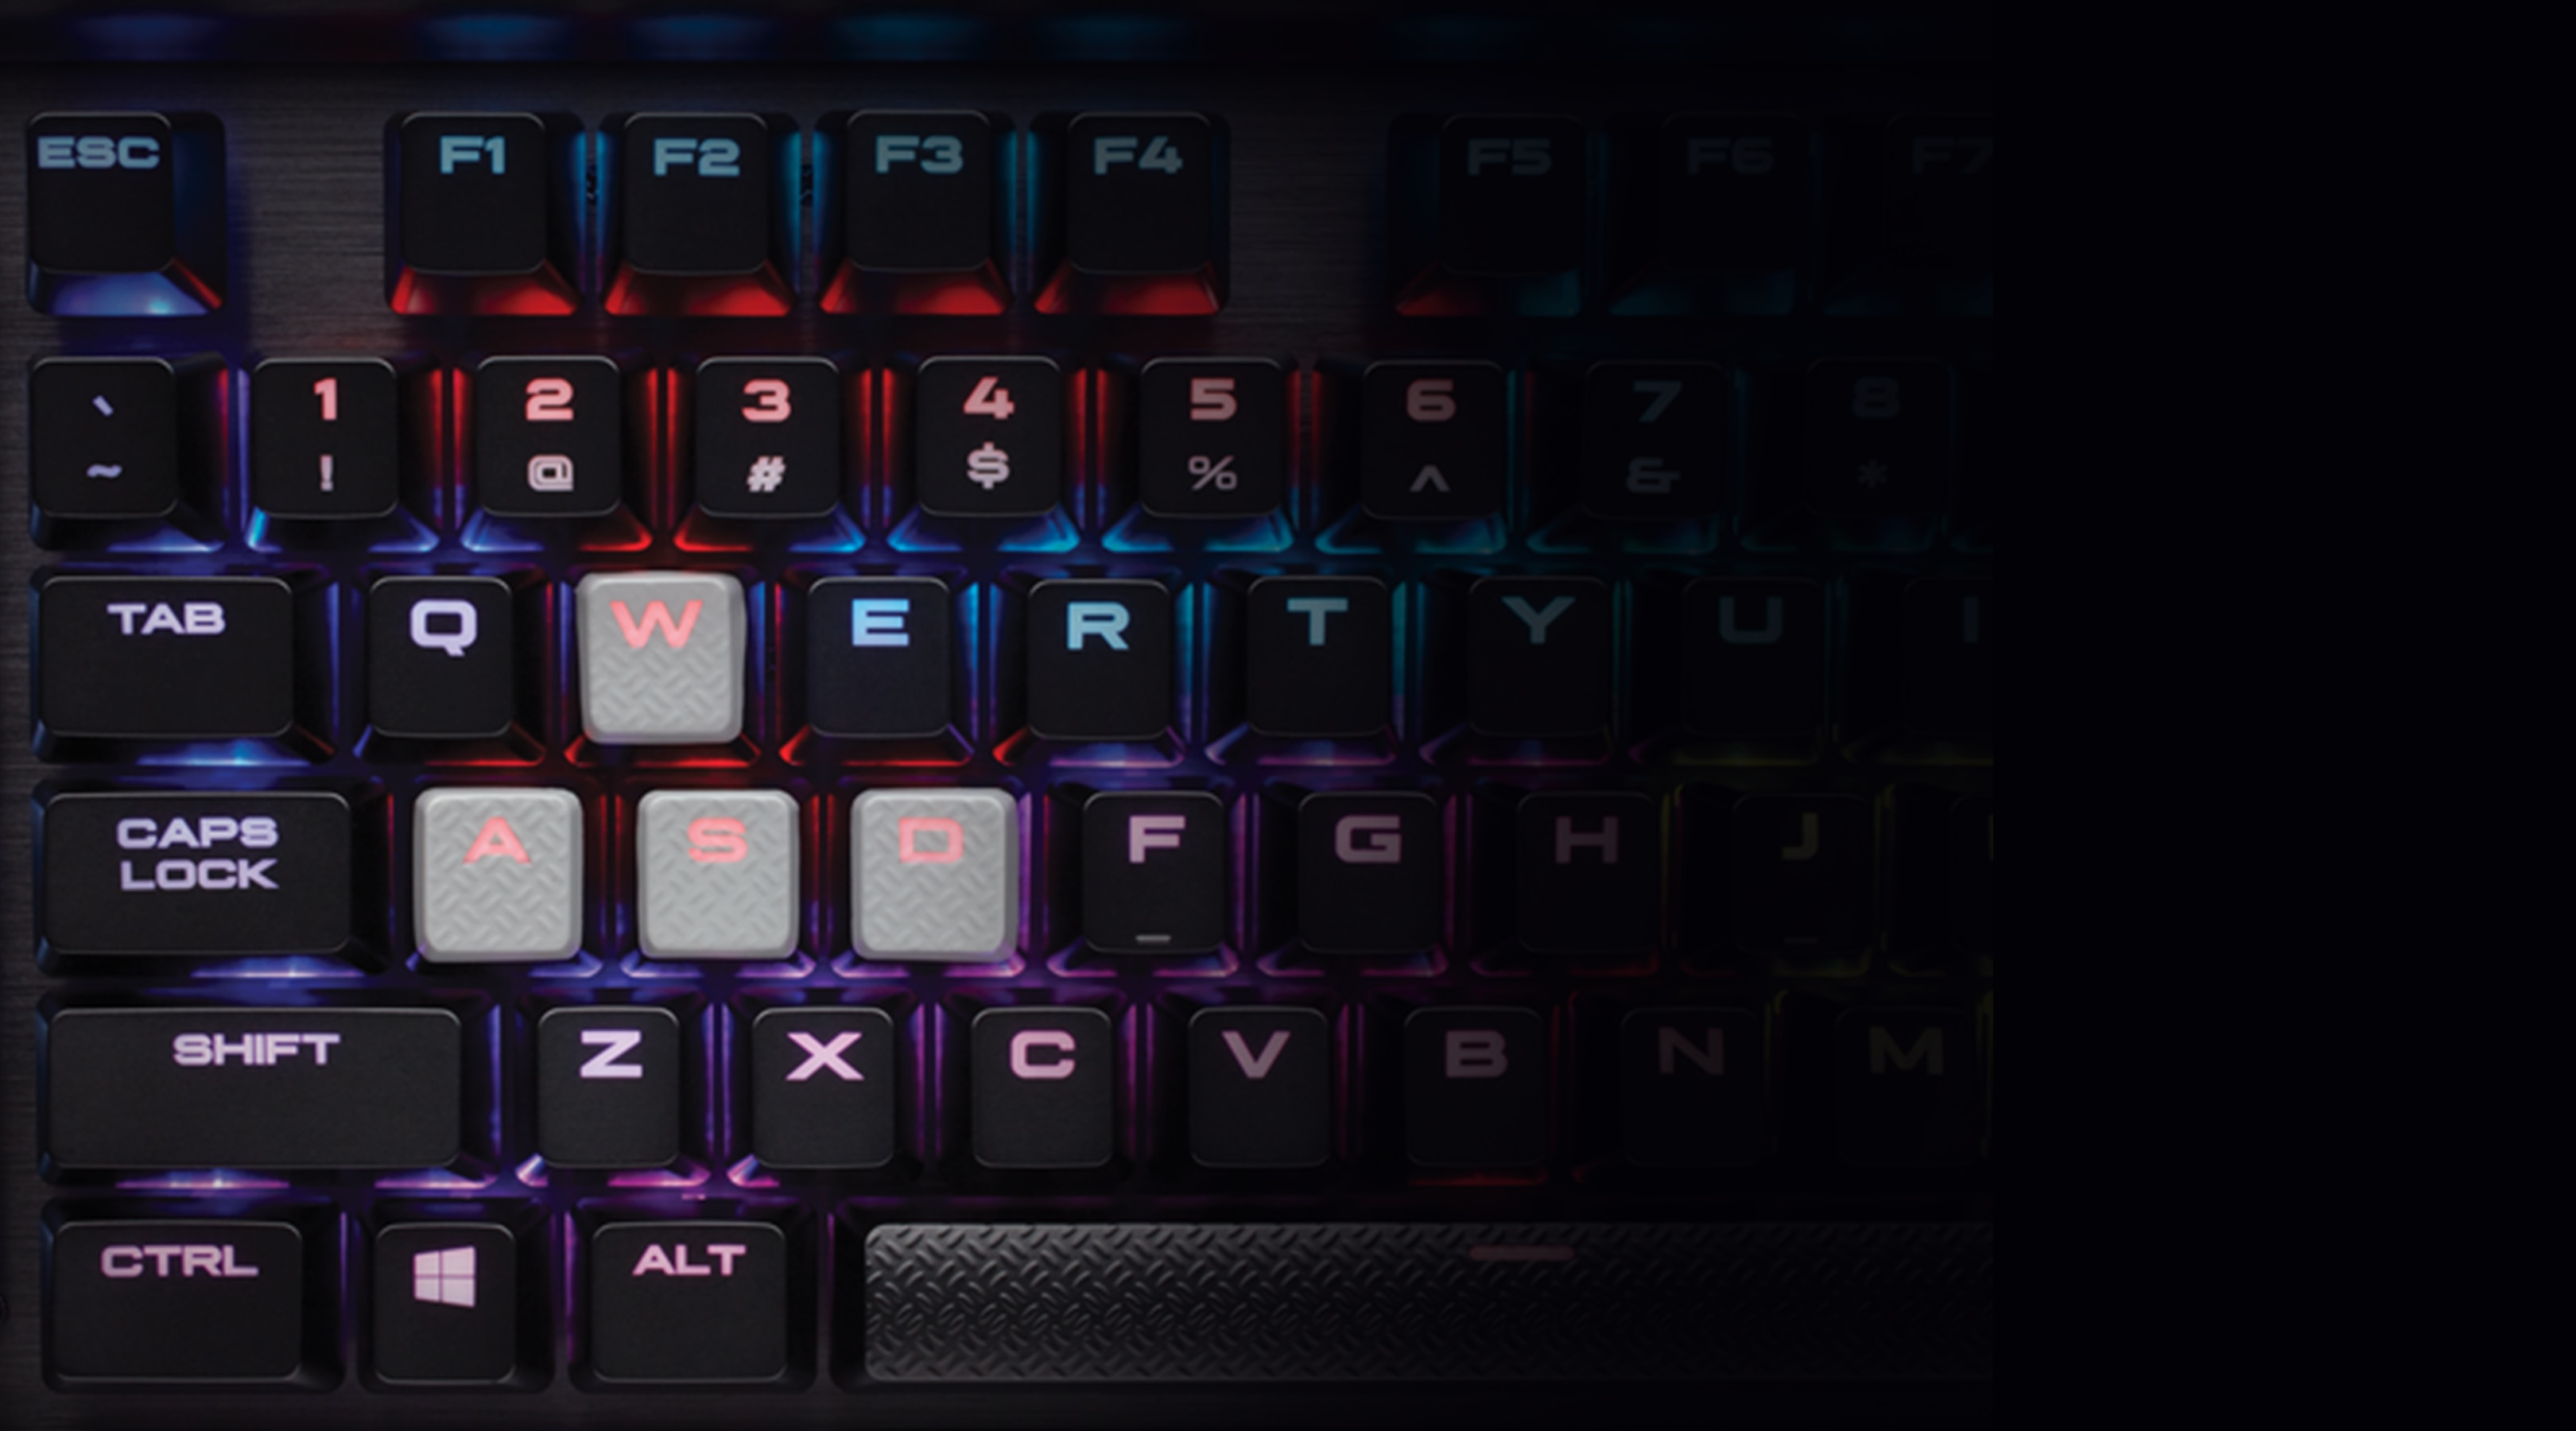 Corsair K95 RGB Platinum Mechanical Keyboard (SPEED RGB)